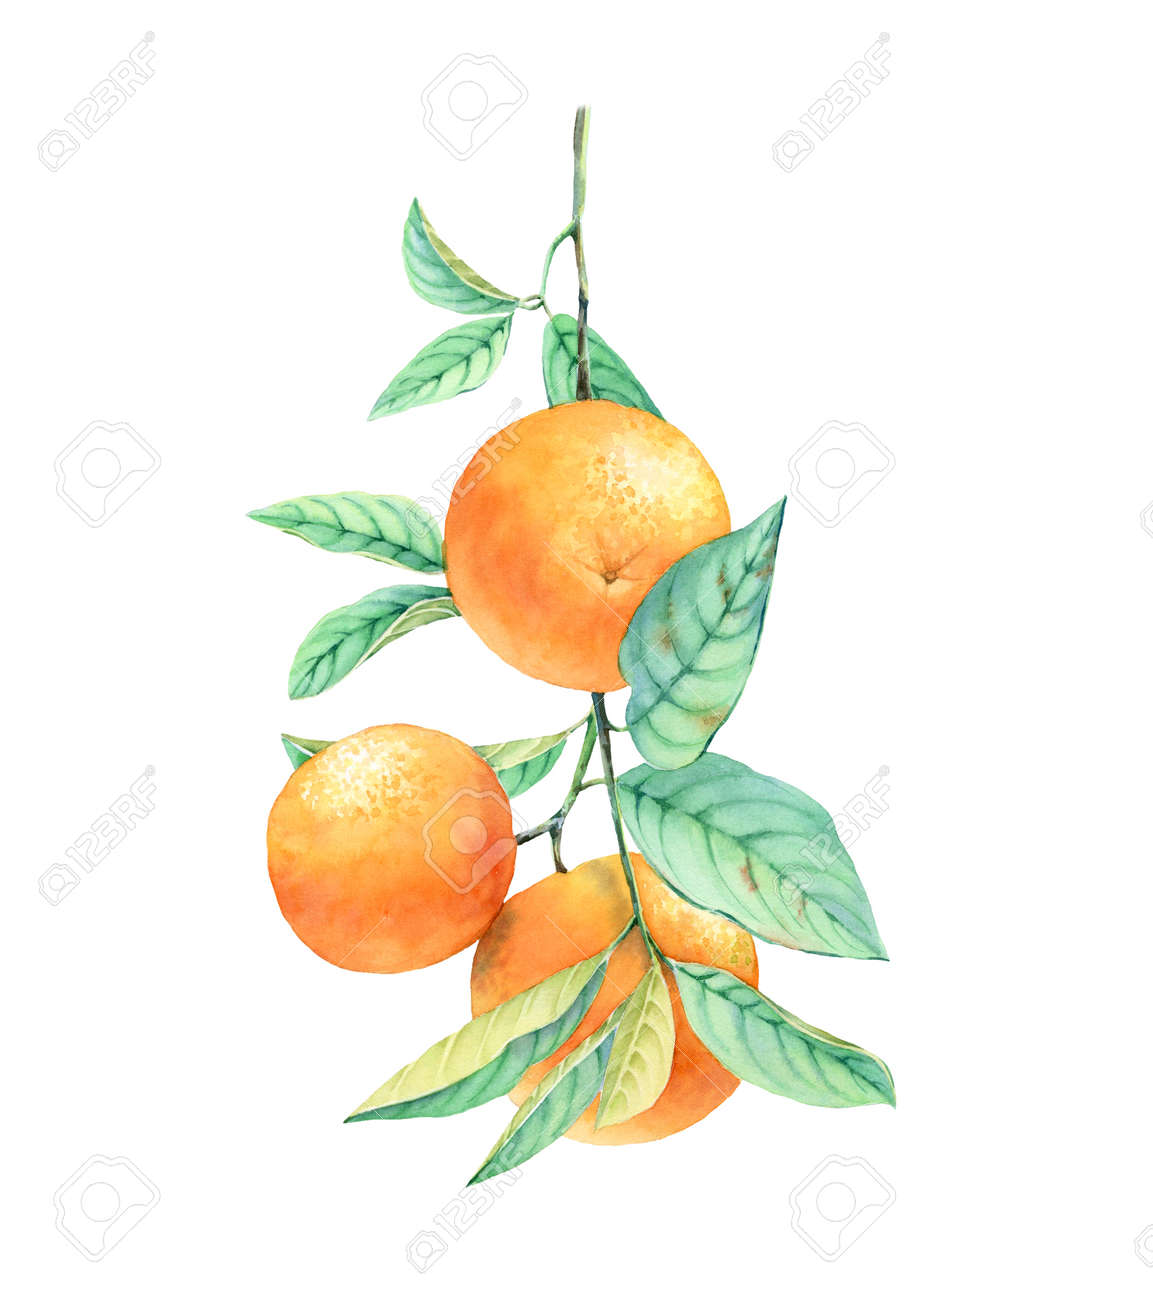 Watercolor Orange Fruit Tree Branch Realistic Botanical Illustration Stock Photo Picture And Royalty Free Image Image 141197258